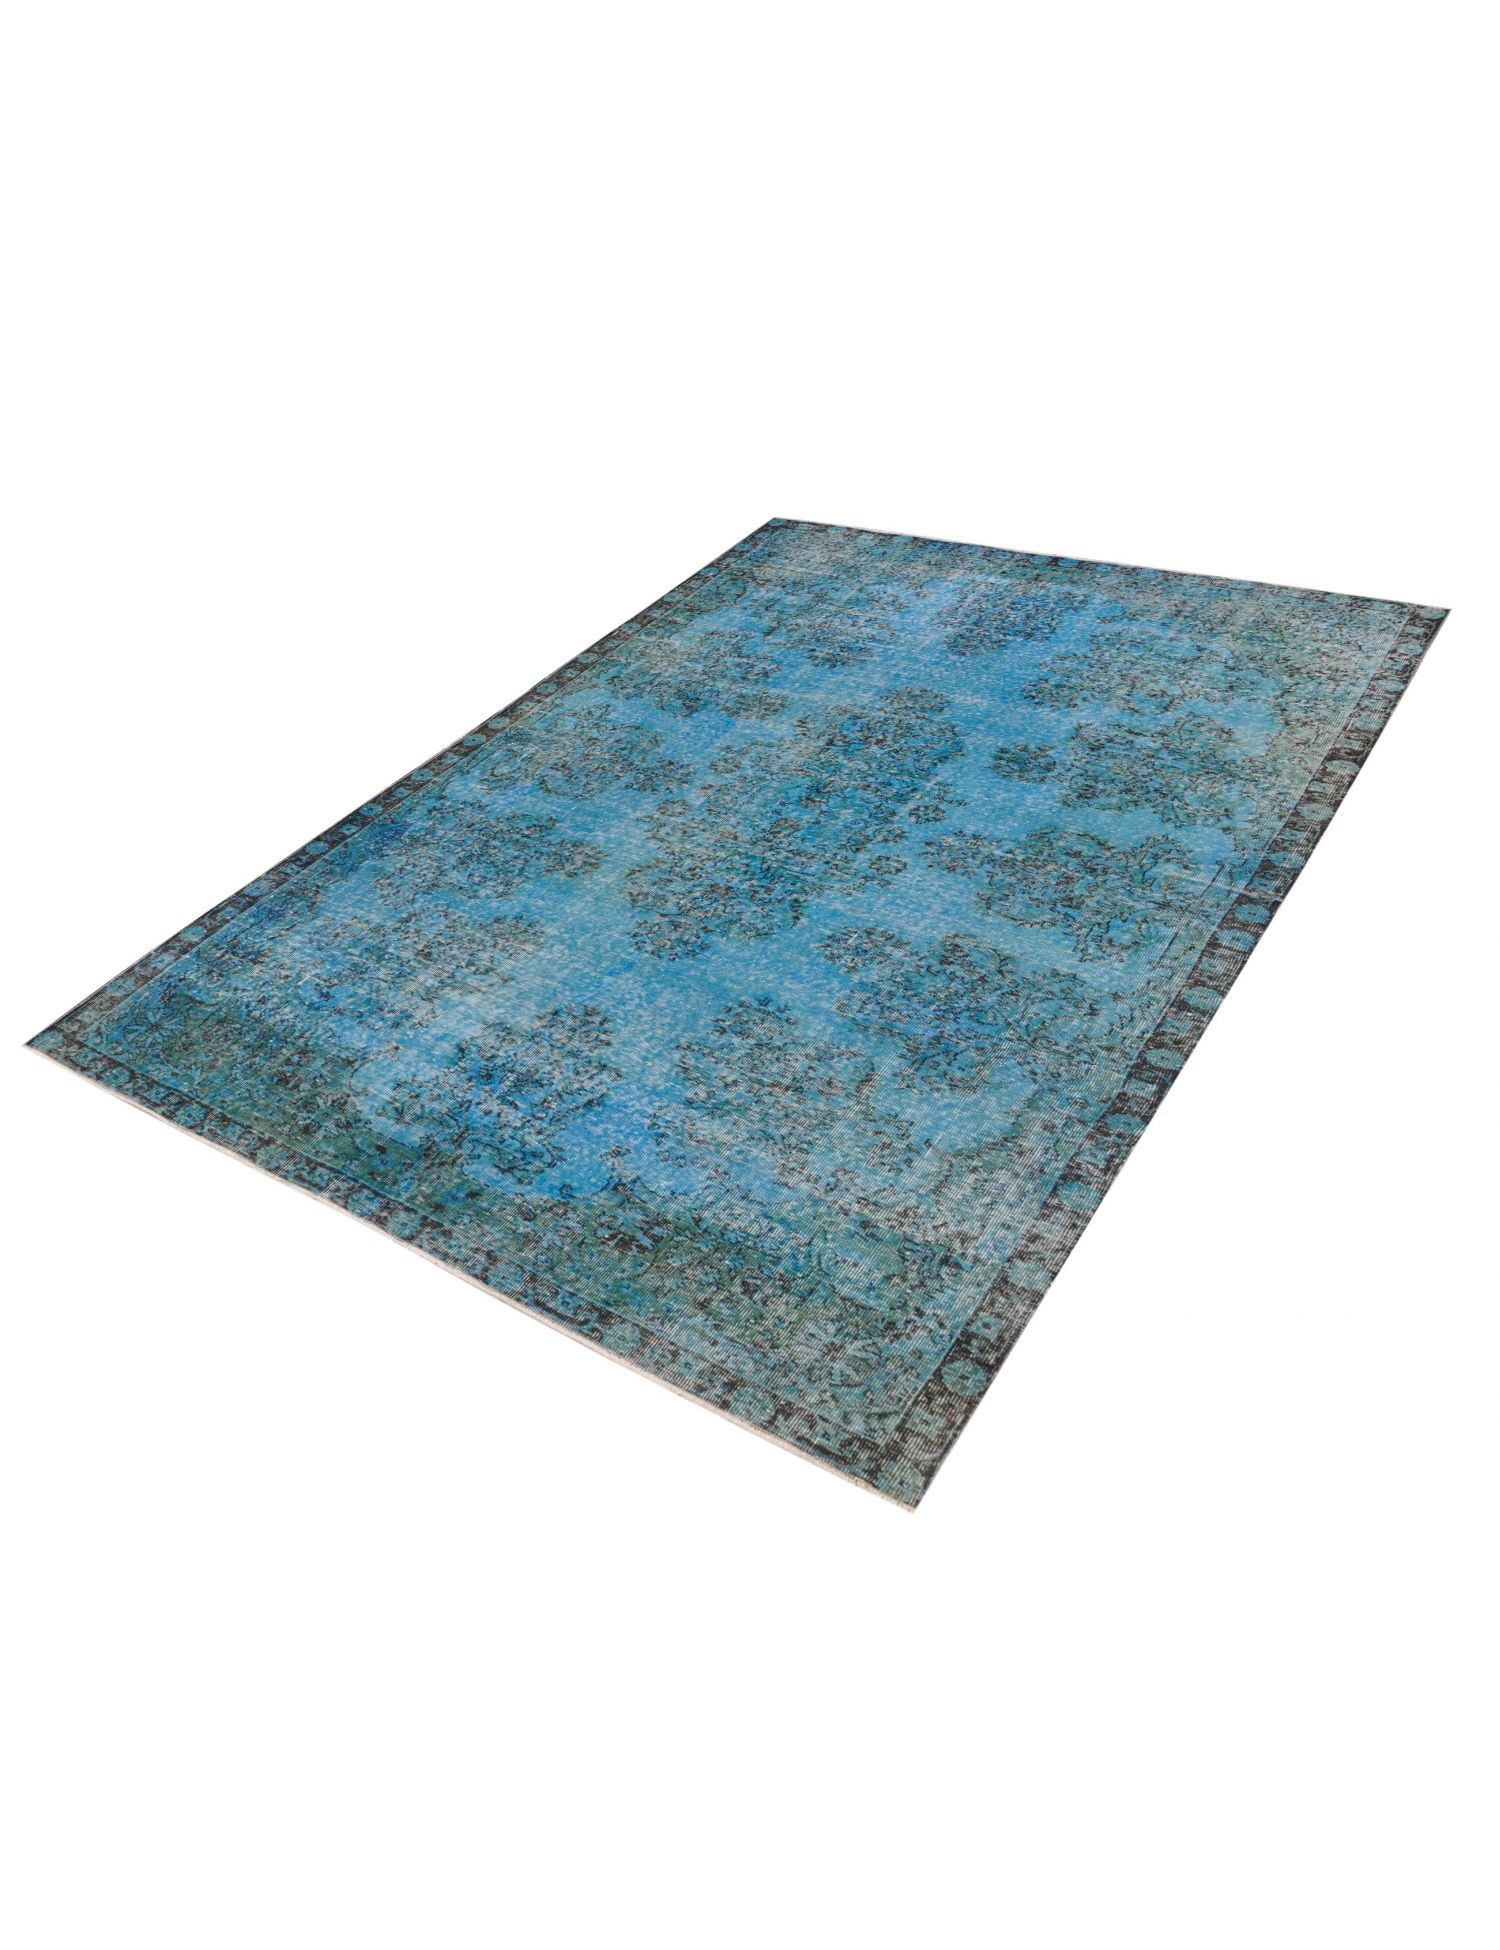 Vintage Carpet  blue <br/>273 x 195 cm